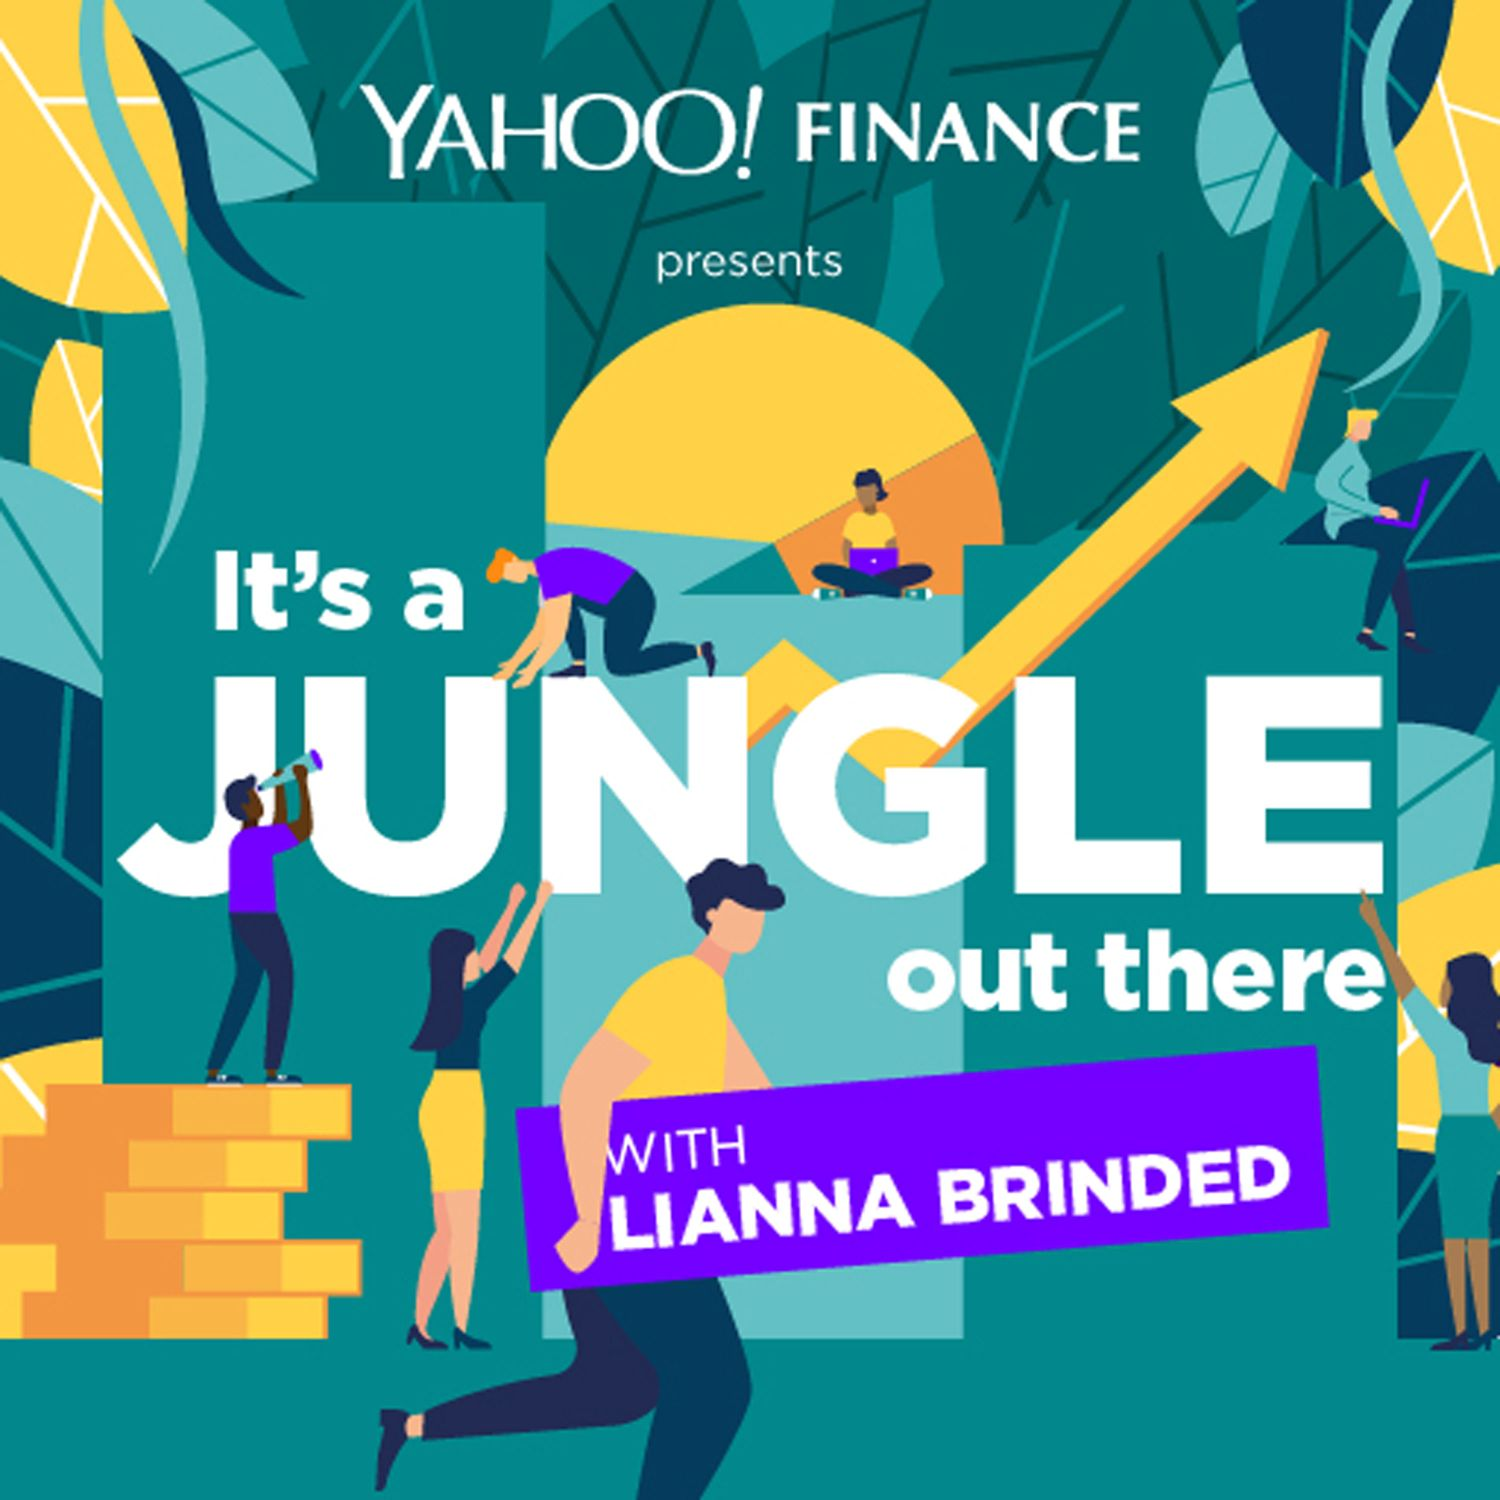 Yahoo Finance Presents It's a Jungle Out There